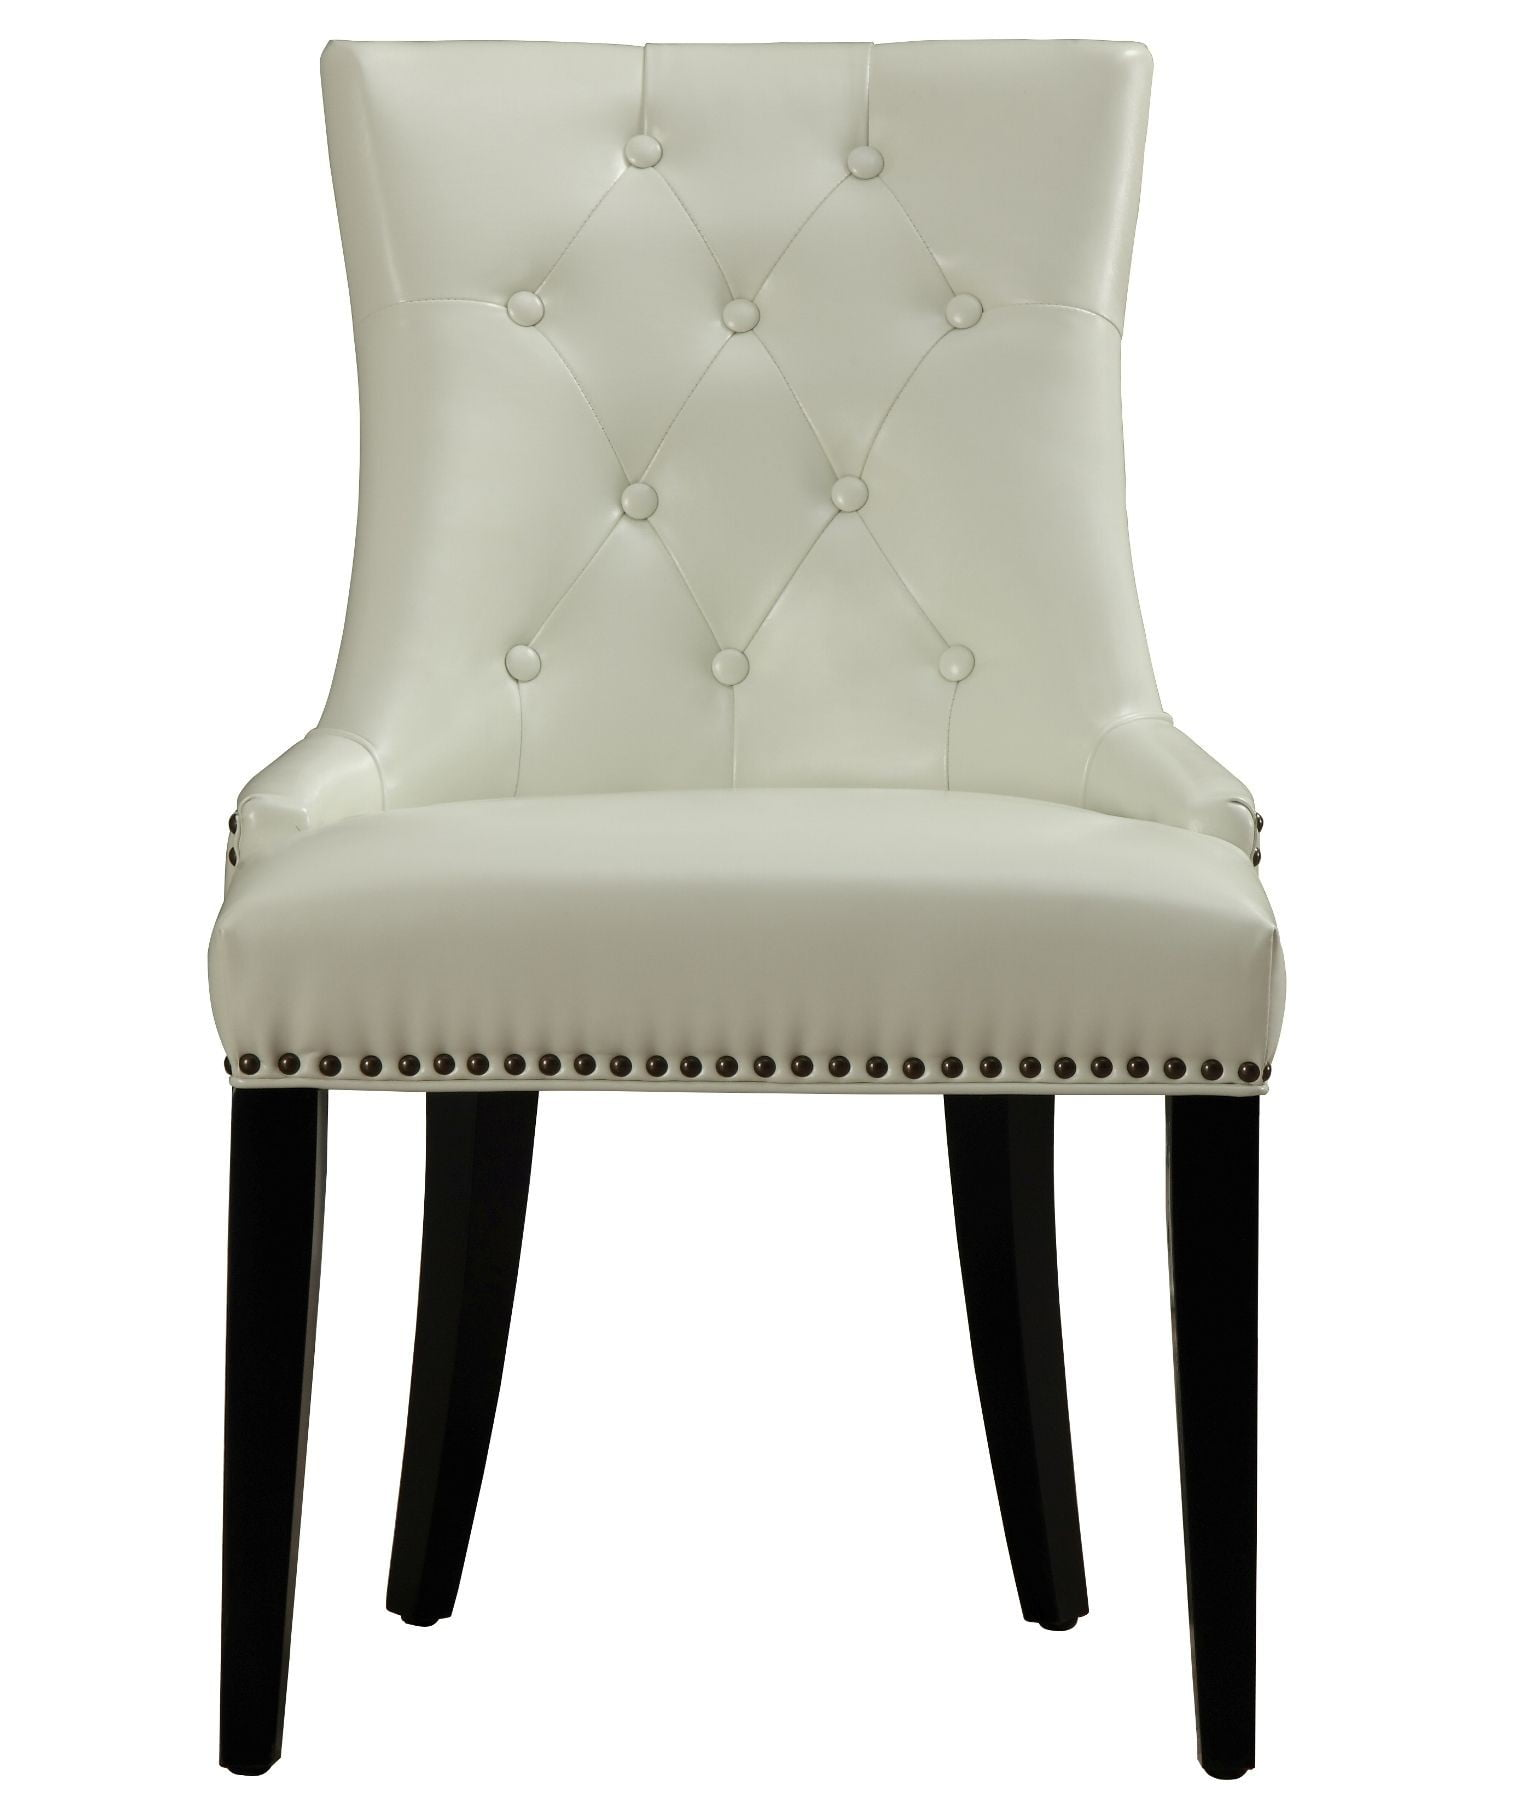 Uptown Cream Leather Dining Chair Set of 2 from TOV D29